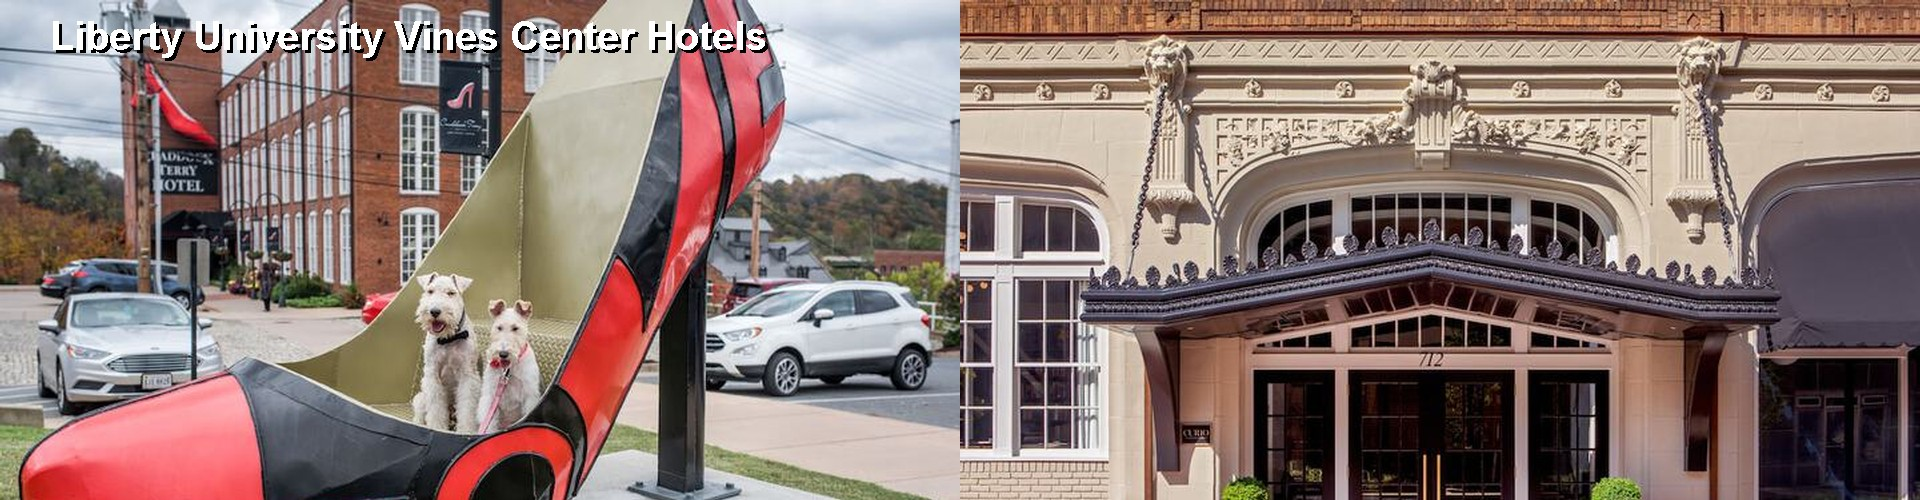 $50+ Hotels Near Liberty University Vines Center in Lynchburg VA